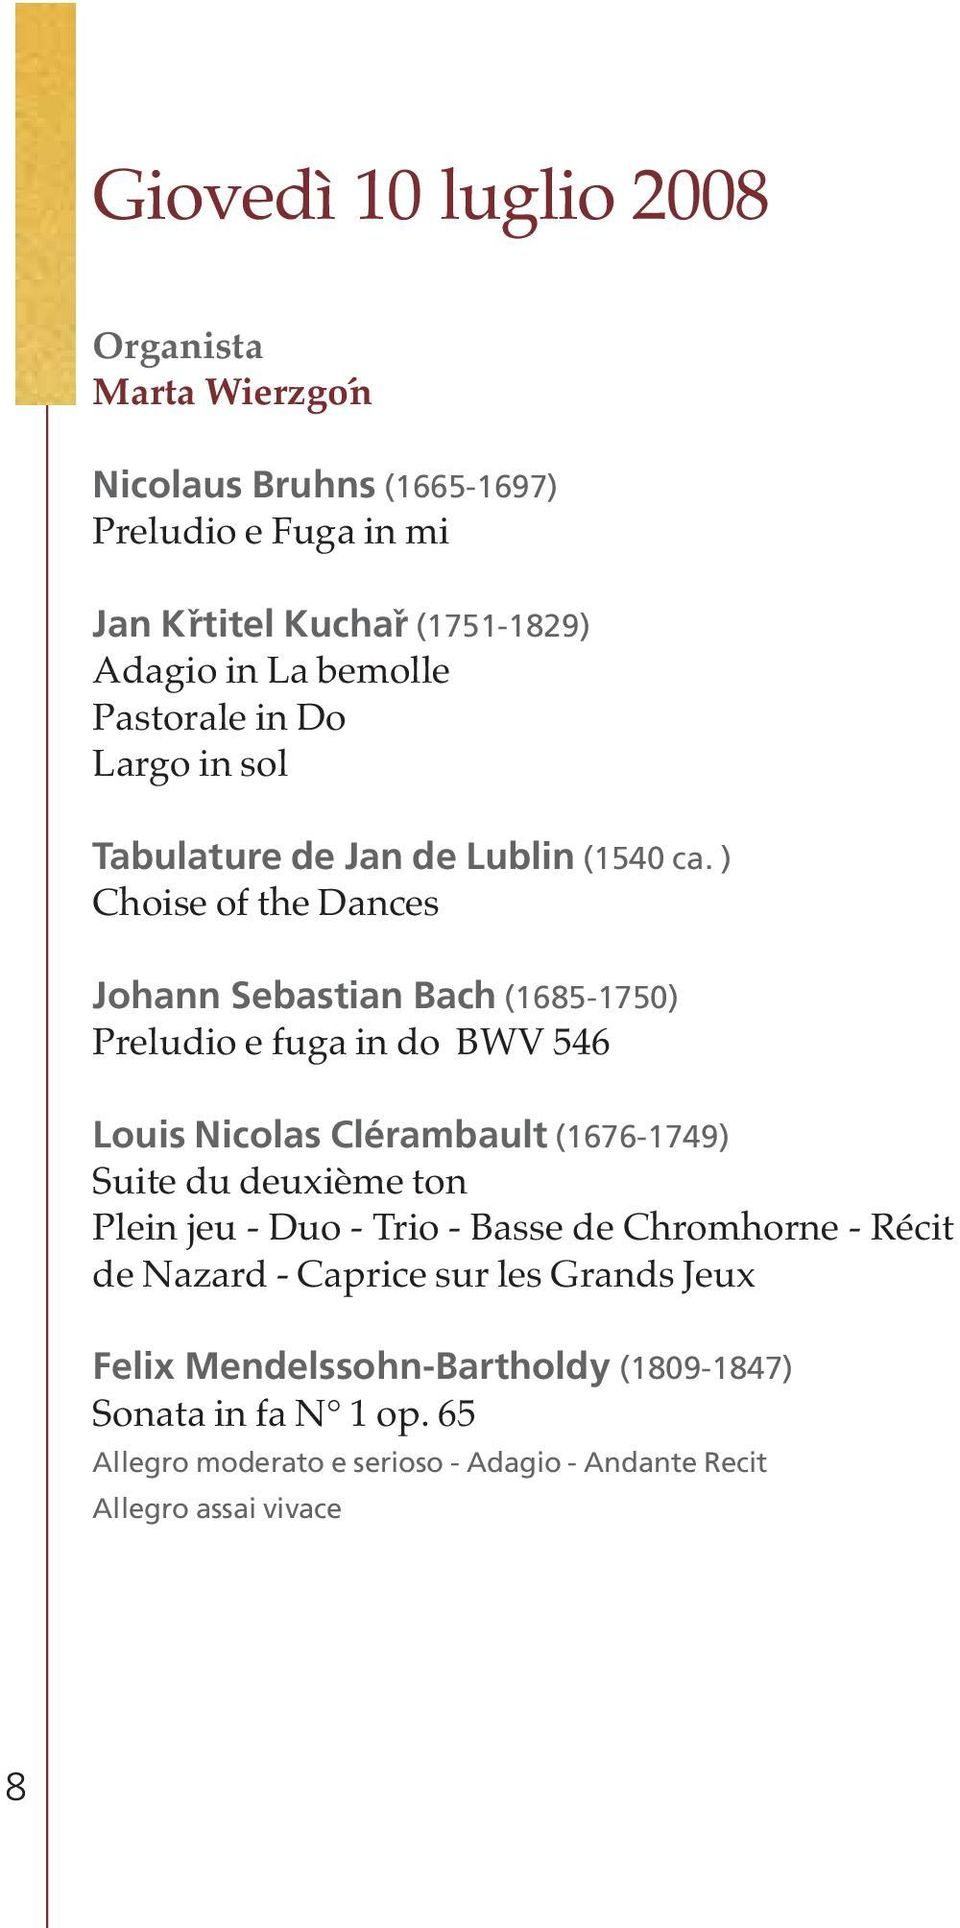 ) Choise of the Dances Johann Sebastian Bach (1685-1750) Preludio e fuga in do BWV 546 Louis Nicolas Clérambault (1676-1749) Suite du deuxième ton